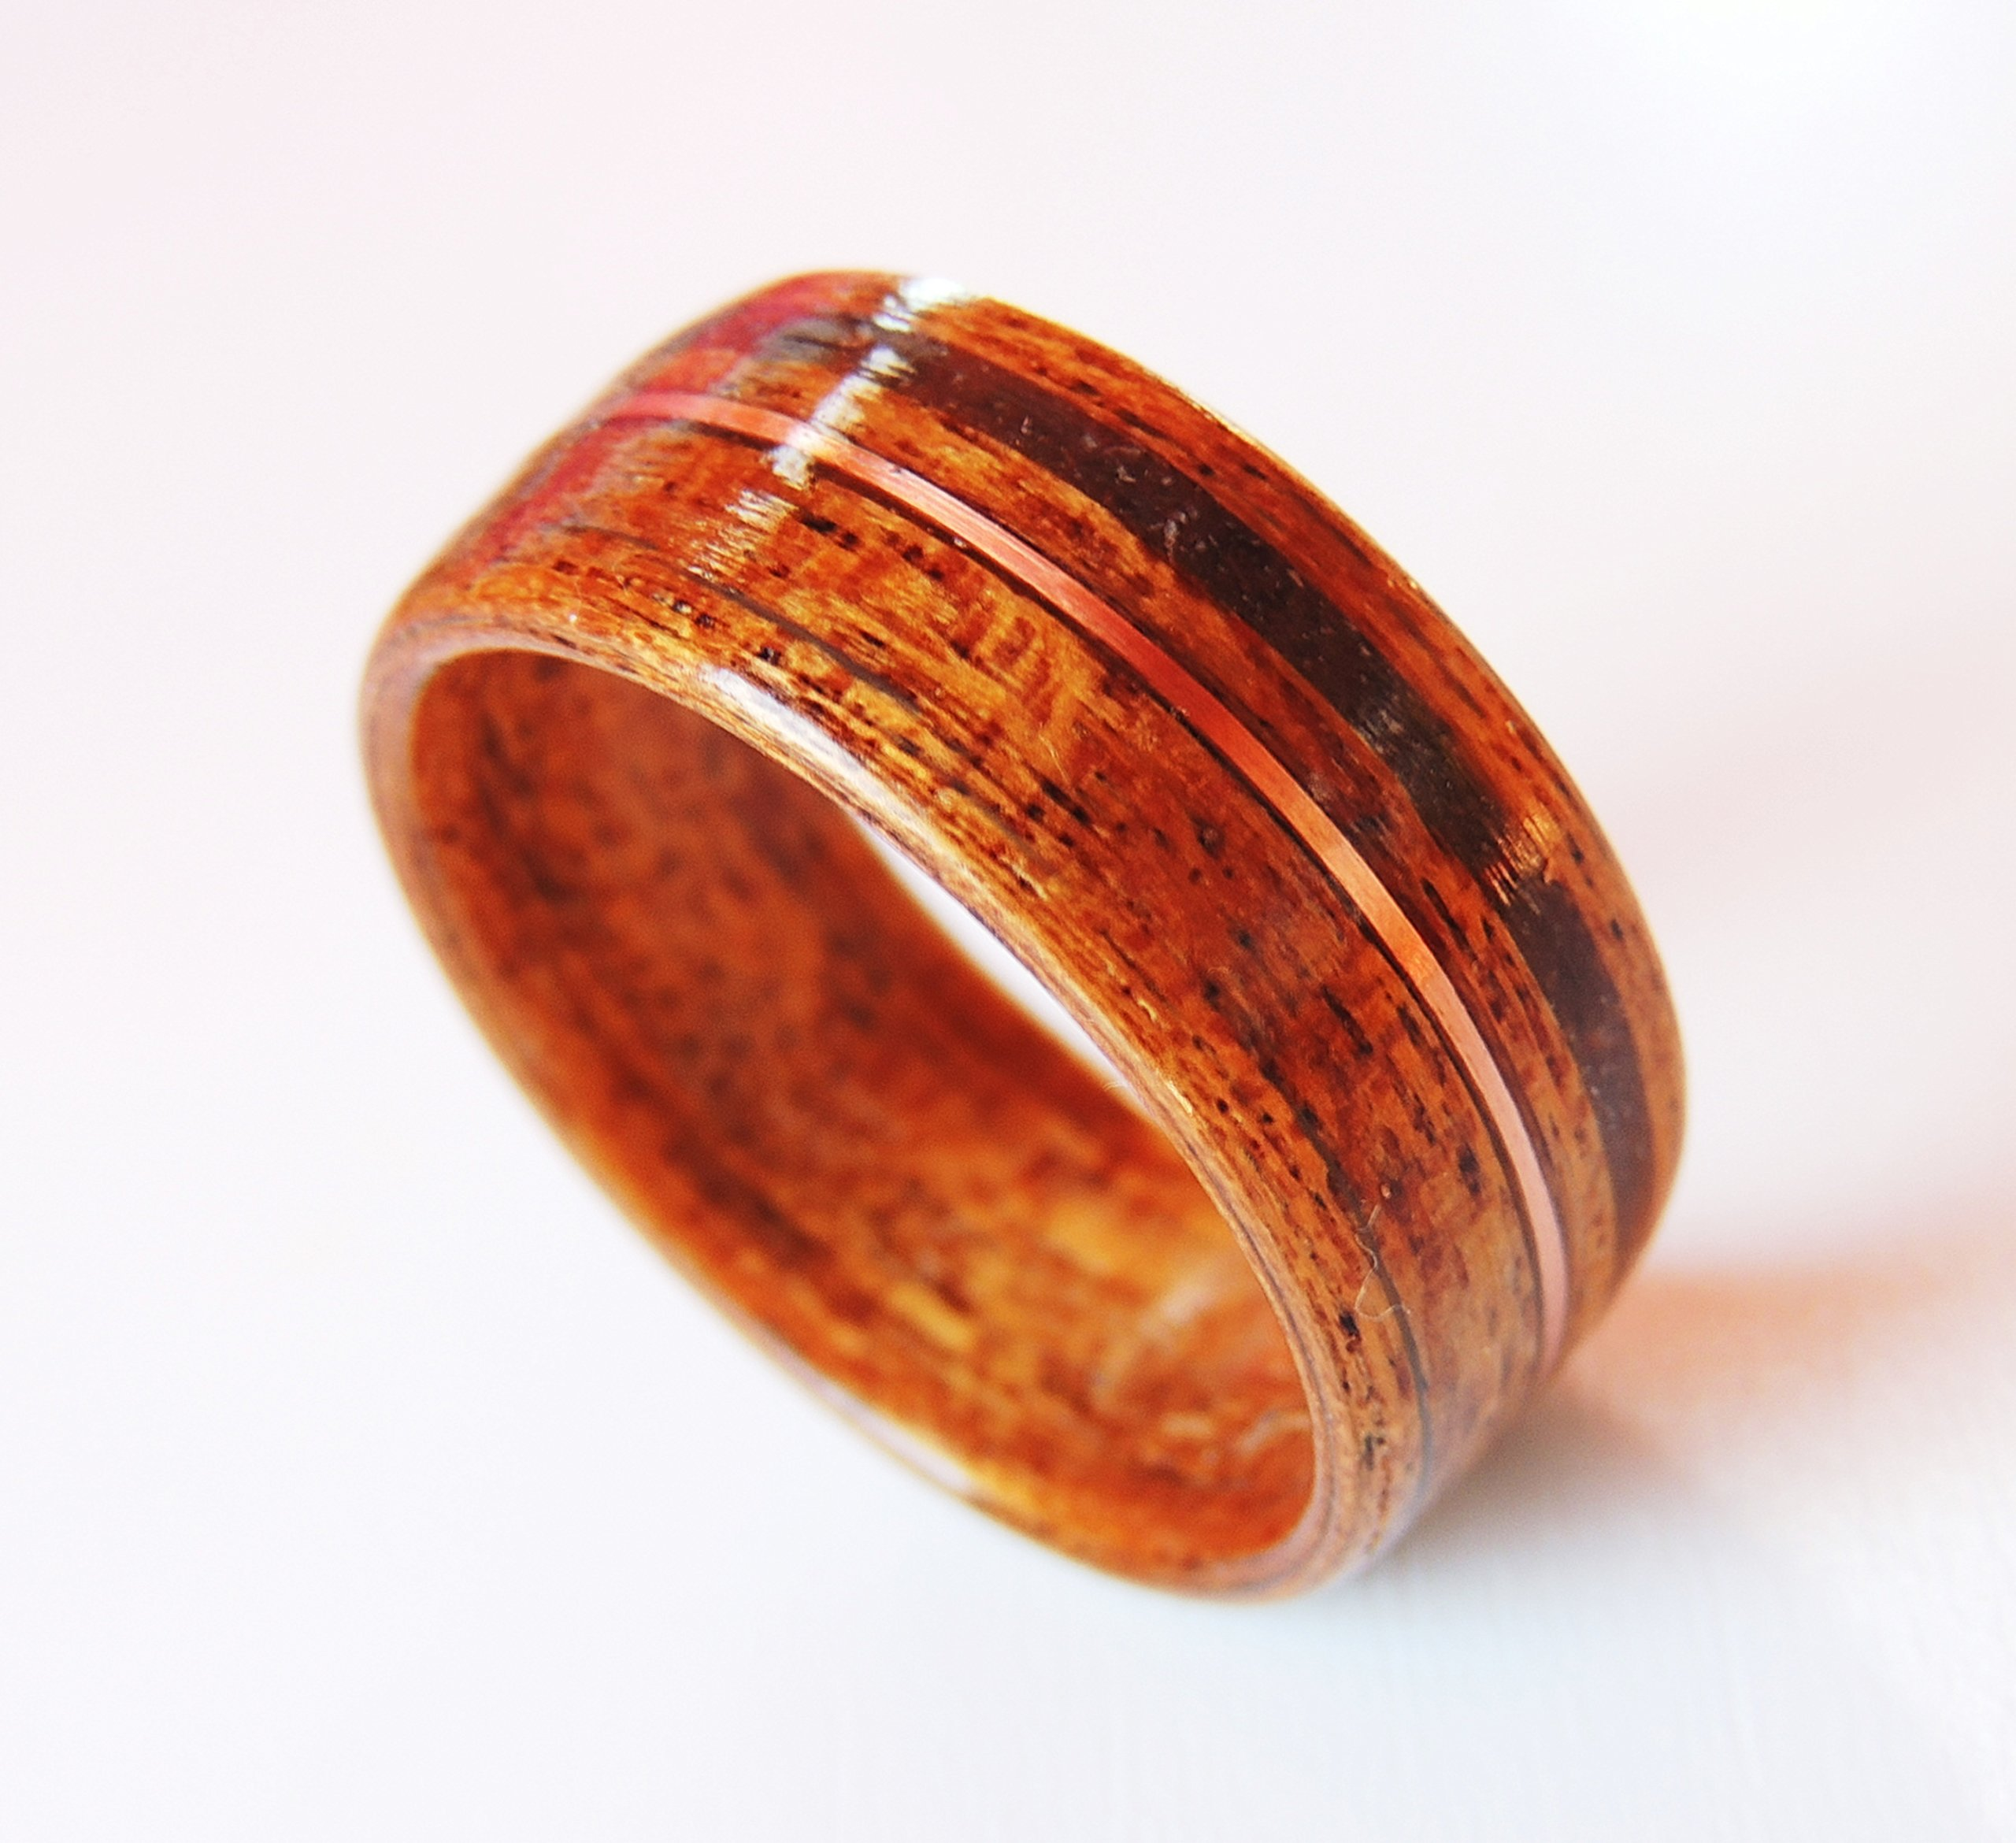 Bentwood Ring Dinosaur Bone with Copper on African Walnut, Non-Metal ring, engagement, wood ring, anniversary